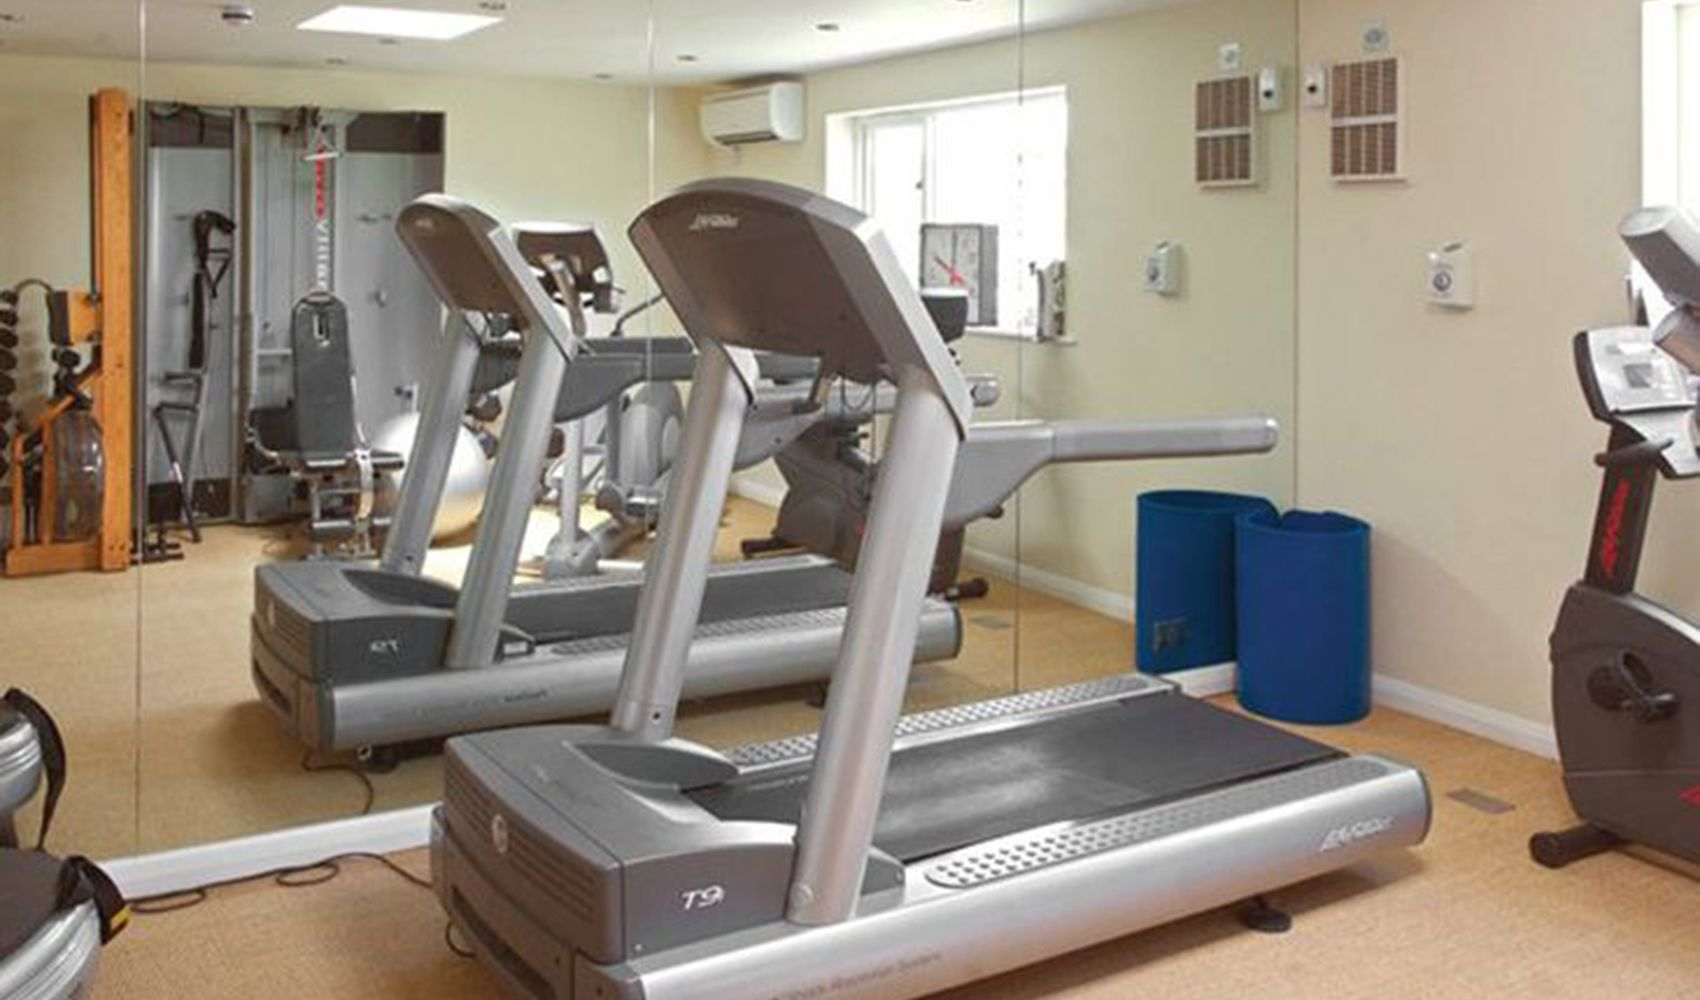 Fully equipped gym with running treadmills, bike, giant TV screen & the Power Plate